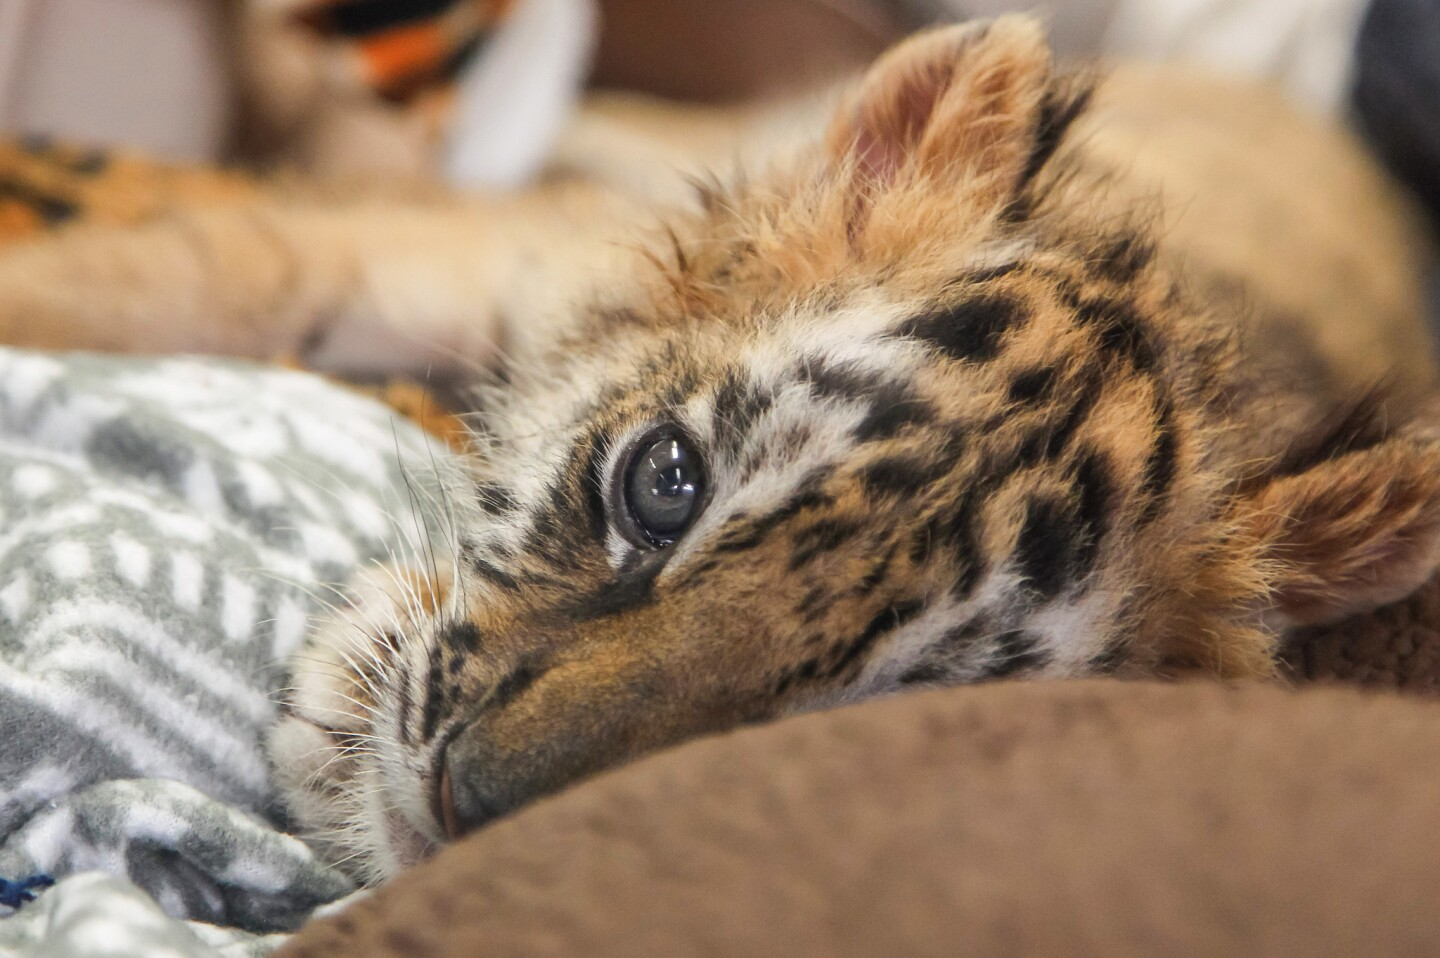 A male tiger cub wakes up from a nap at the San Diego Zoo Safari Park on Wednesday. It was confiscated at the border from an 18-year-old attempting to smuggle it into the U.S.